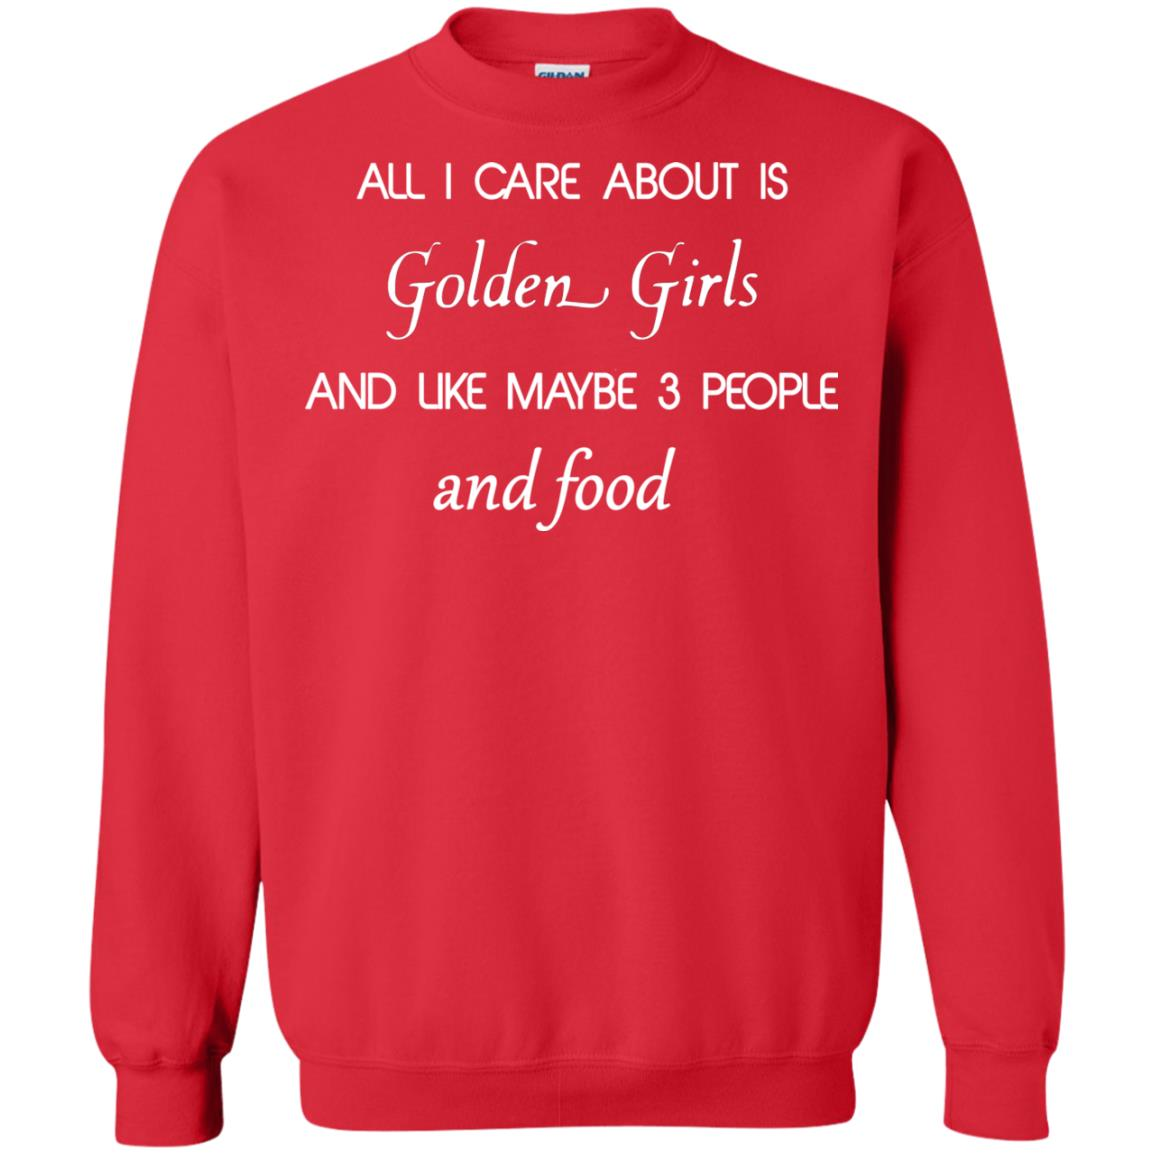 image 2694 - All I Care About Is Golden Girls Shirt, Hoodie